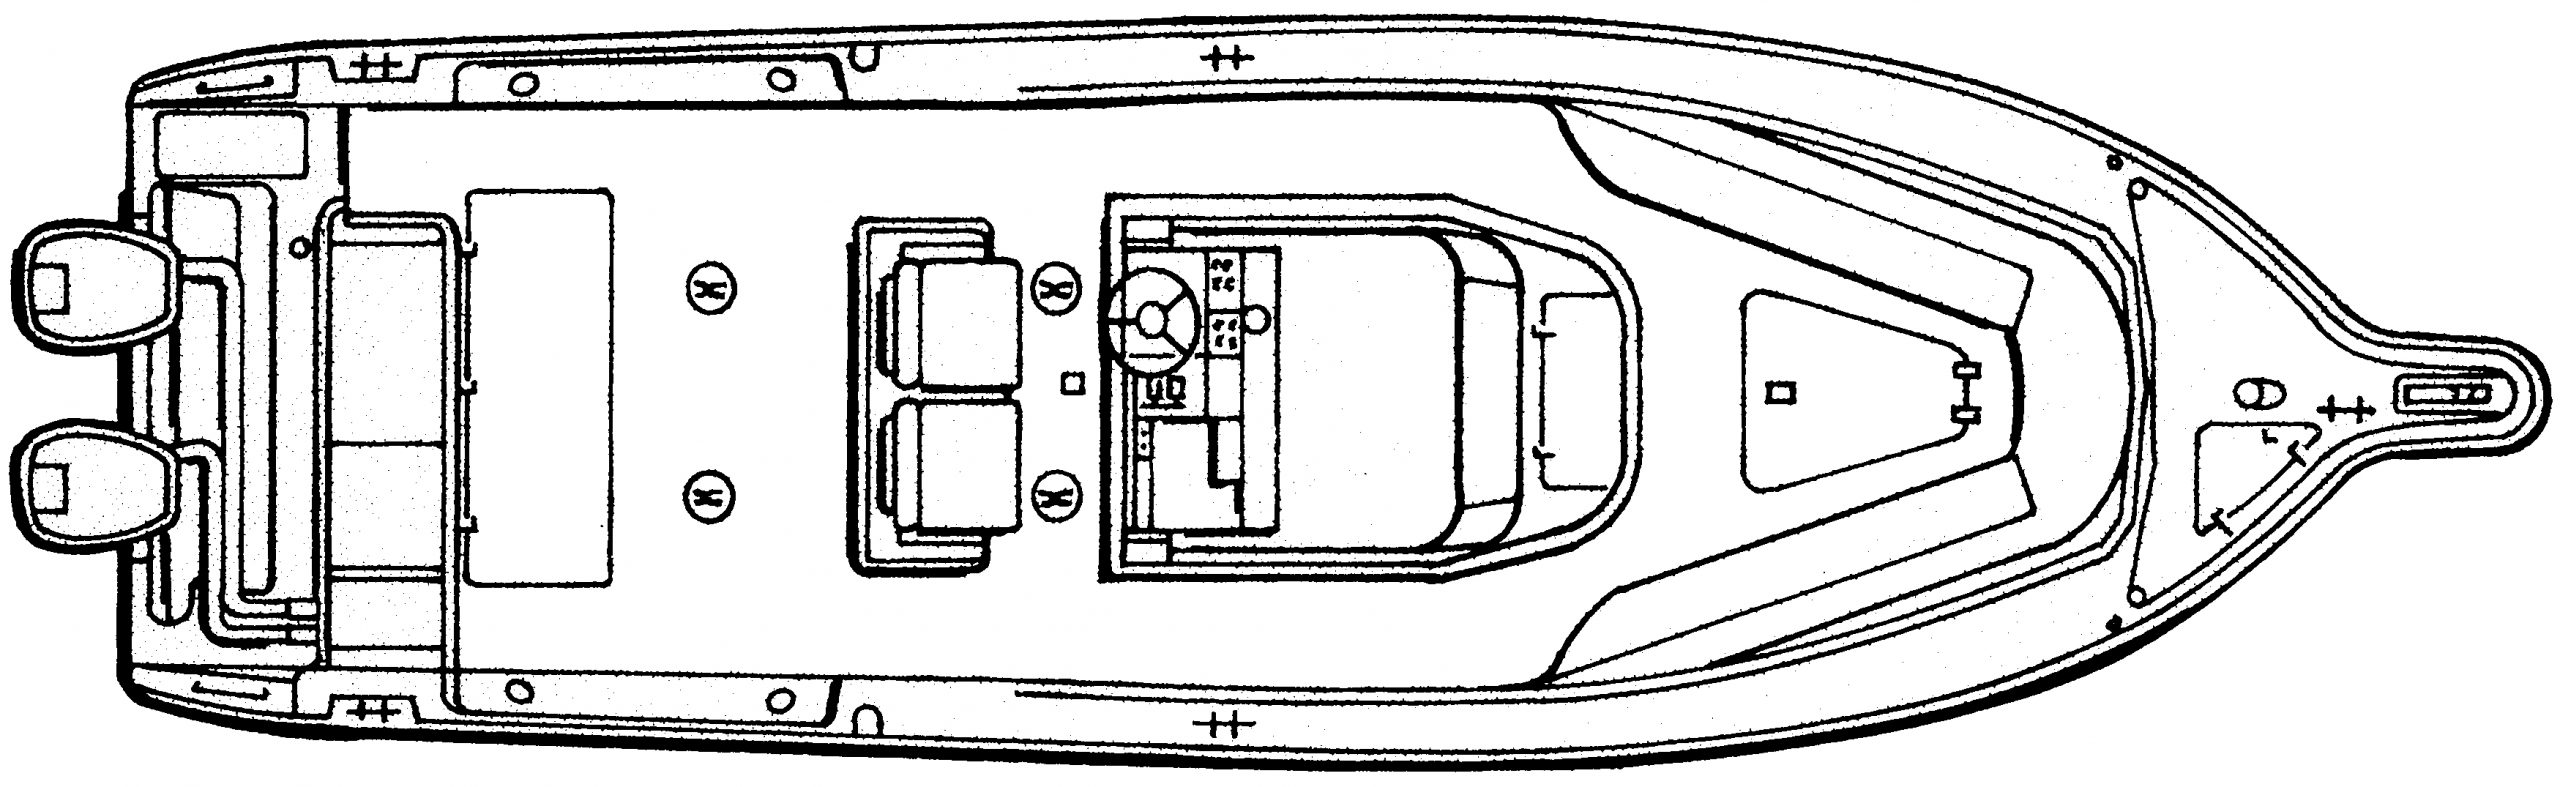 3070 Center Console; C 300 Floor Plan 1